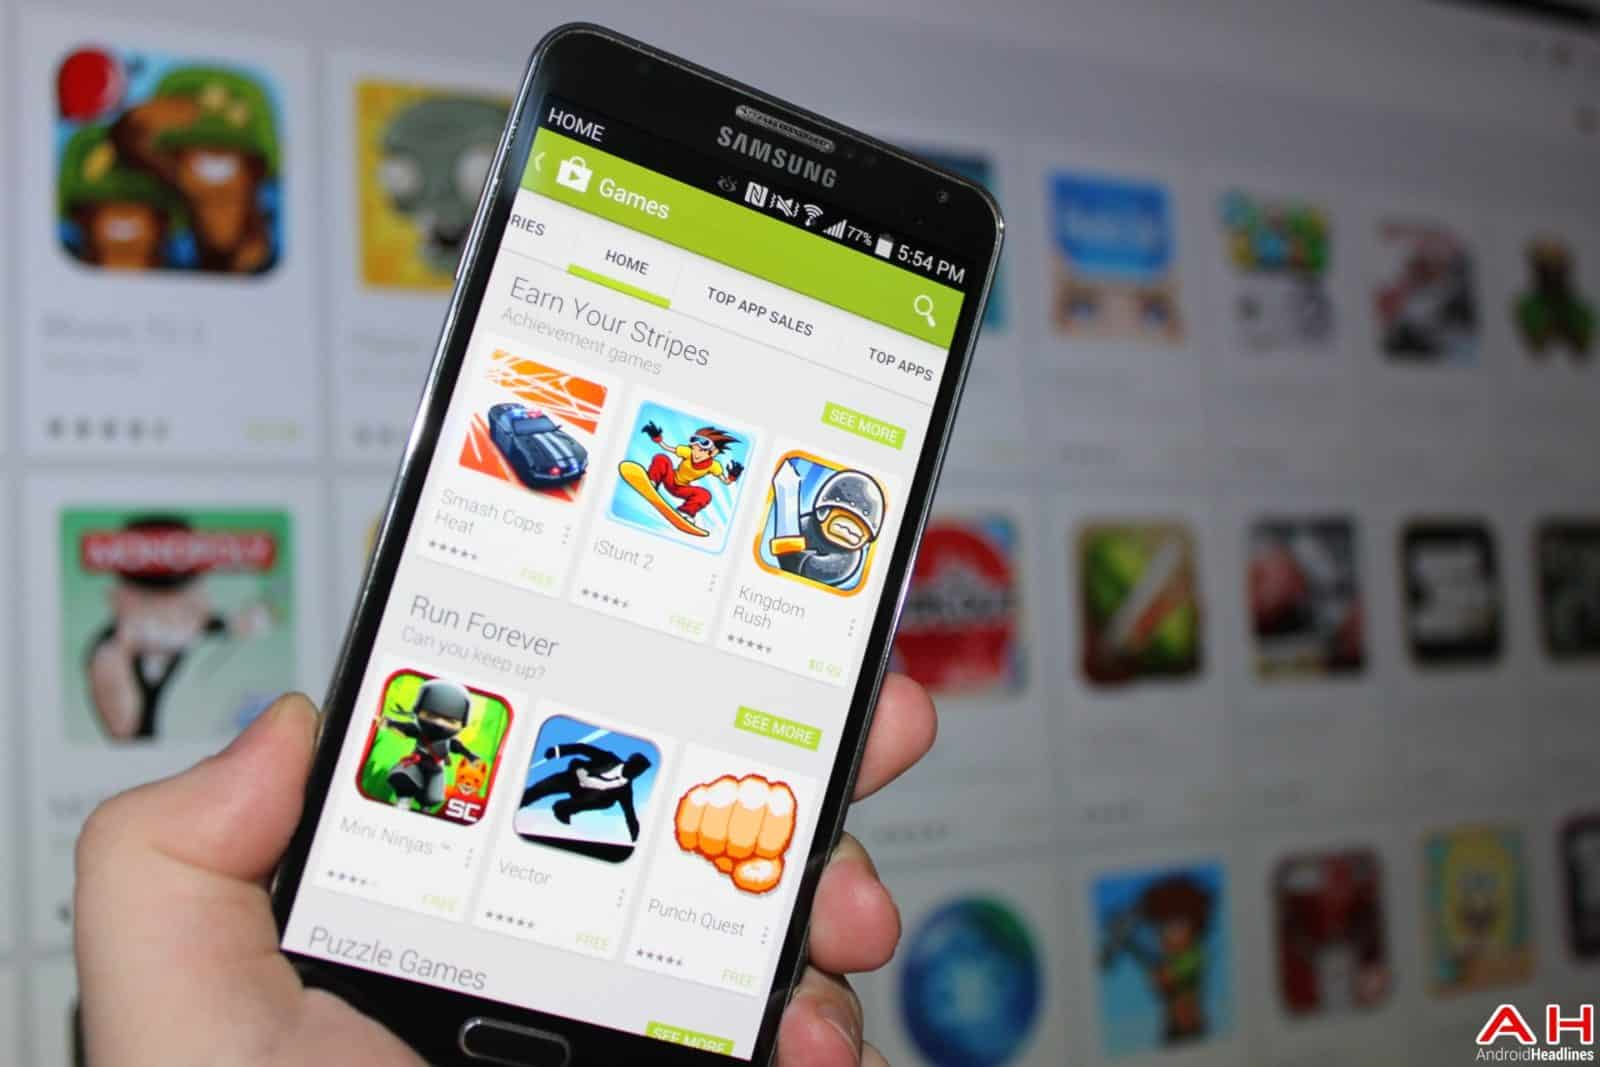 AH Google Play App Store Game of the week top 10 games android 1.2